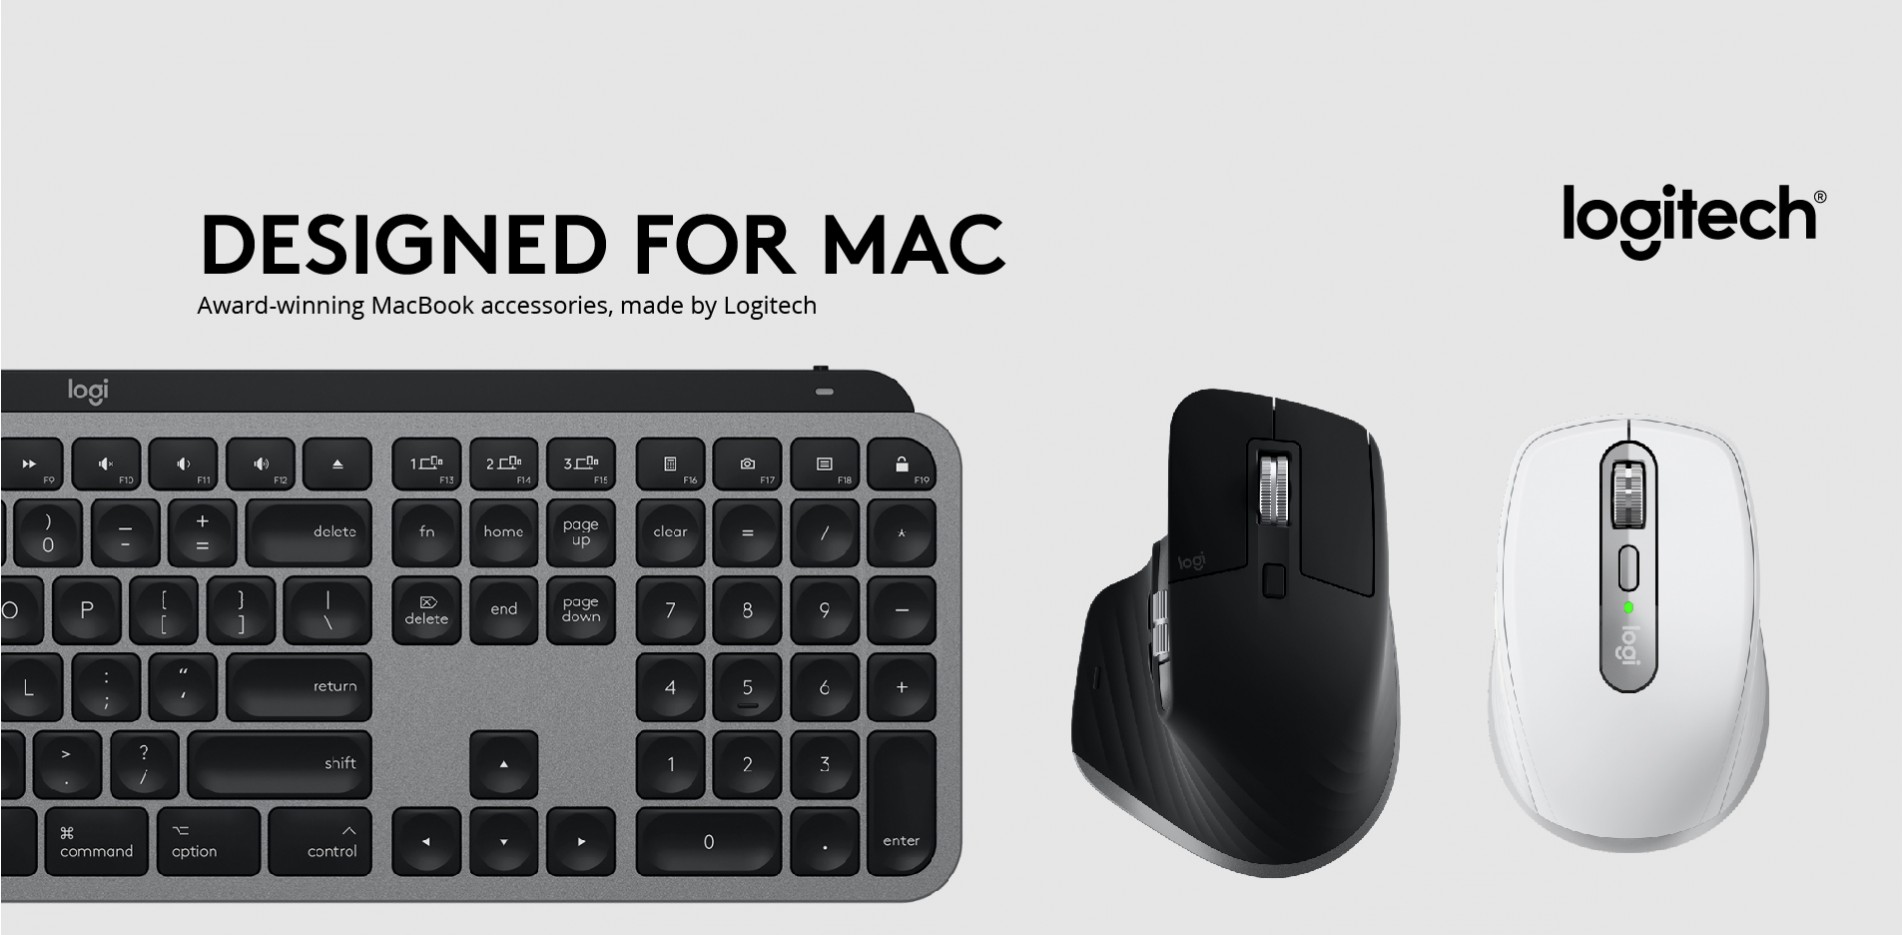 MX Series Designed for Mac